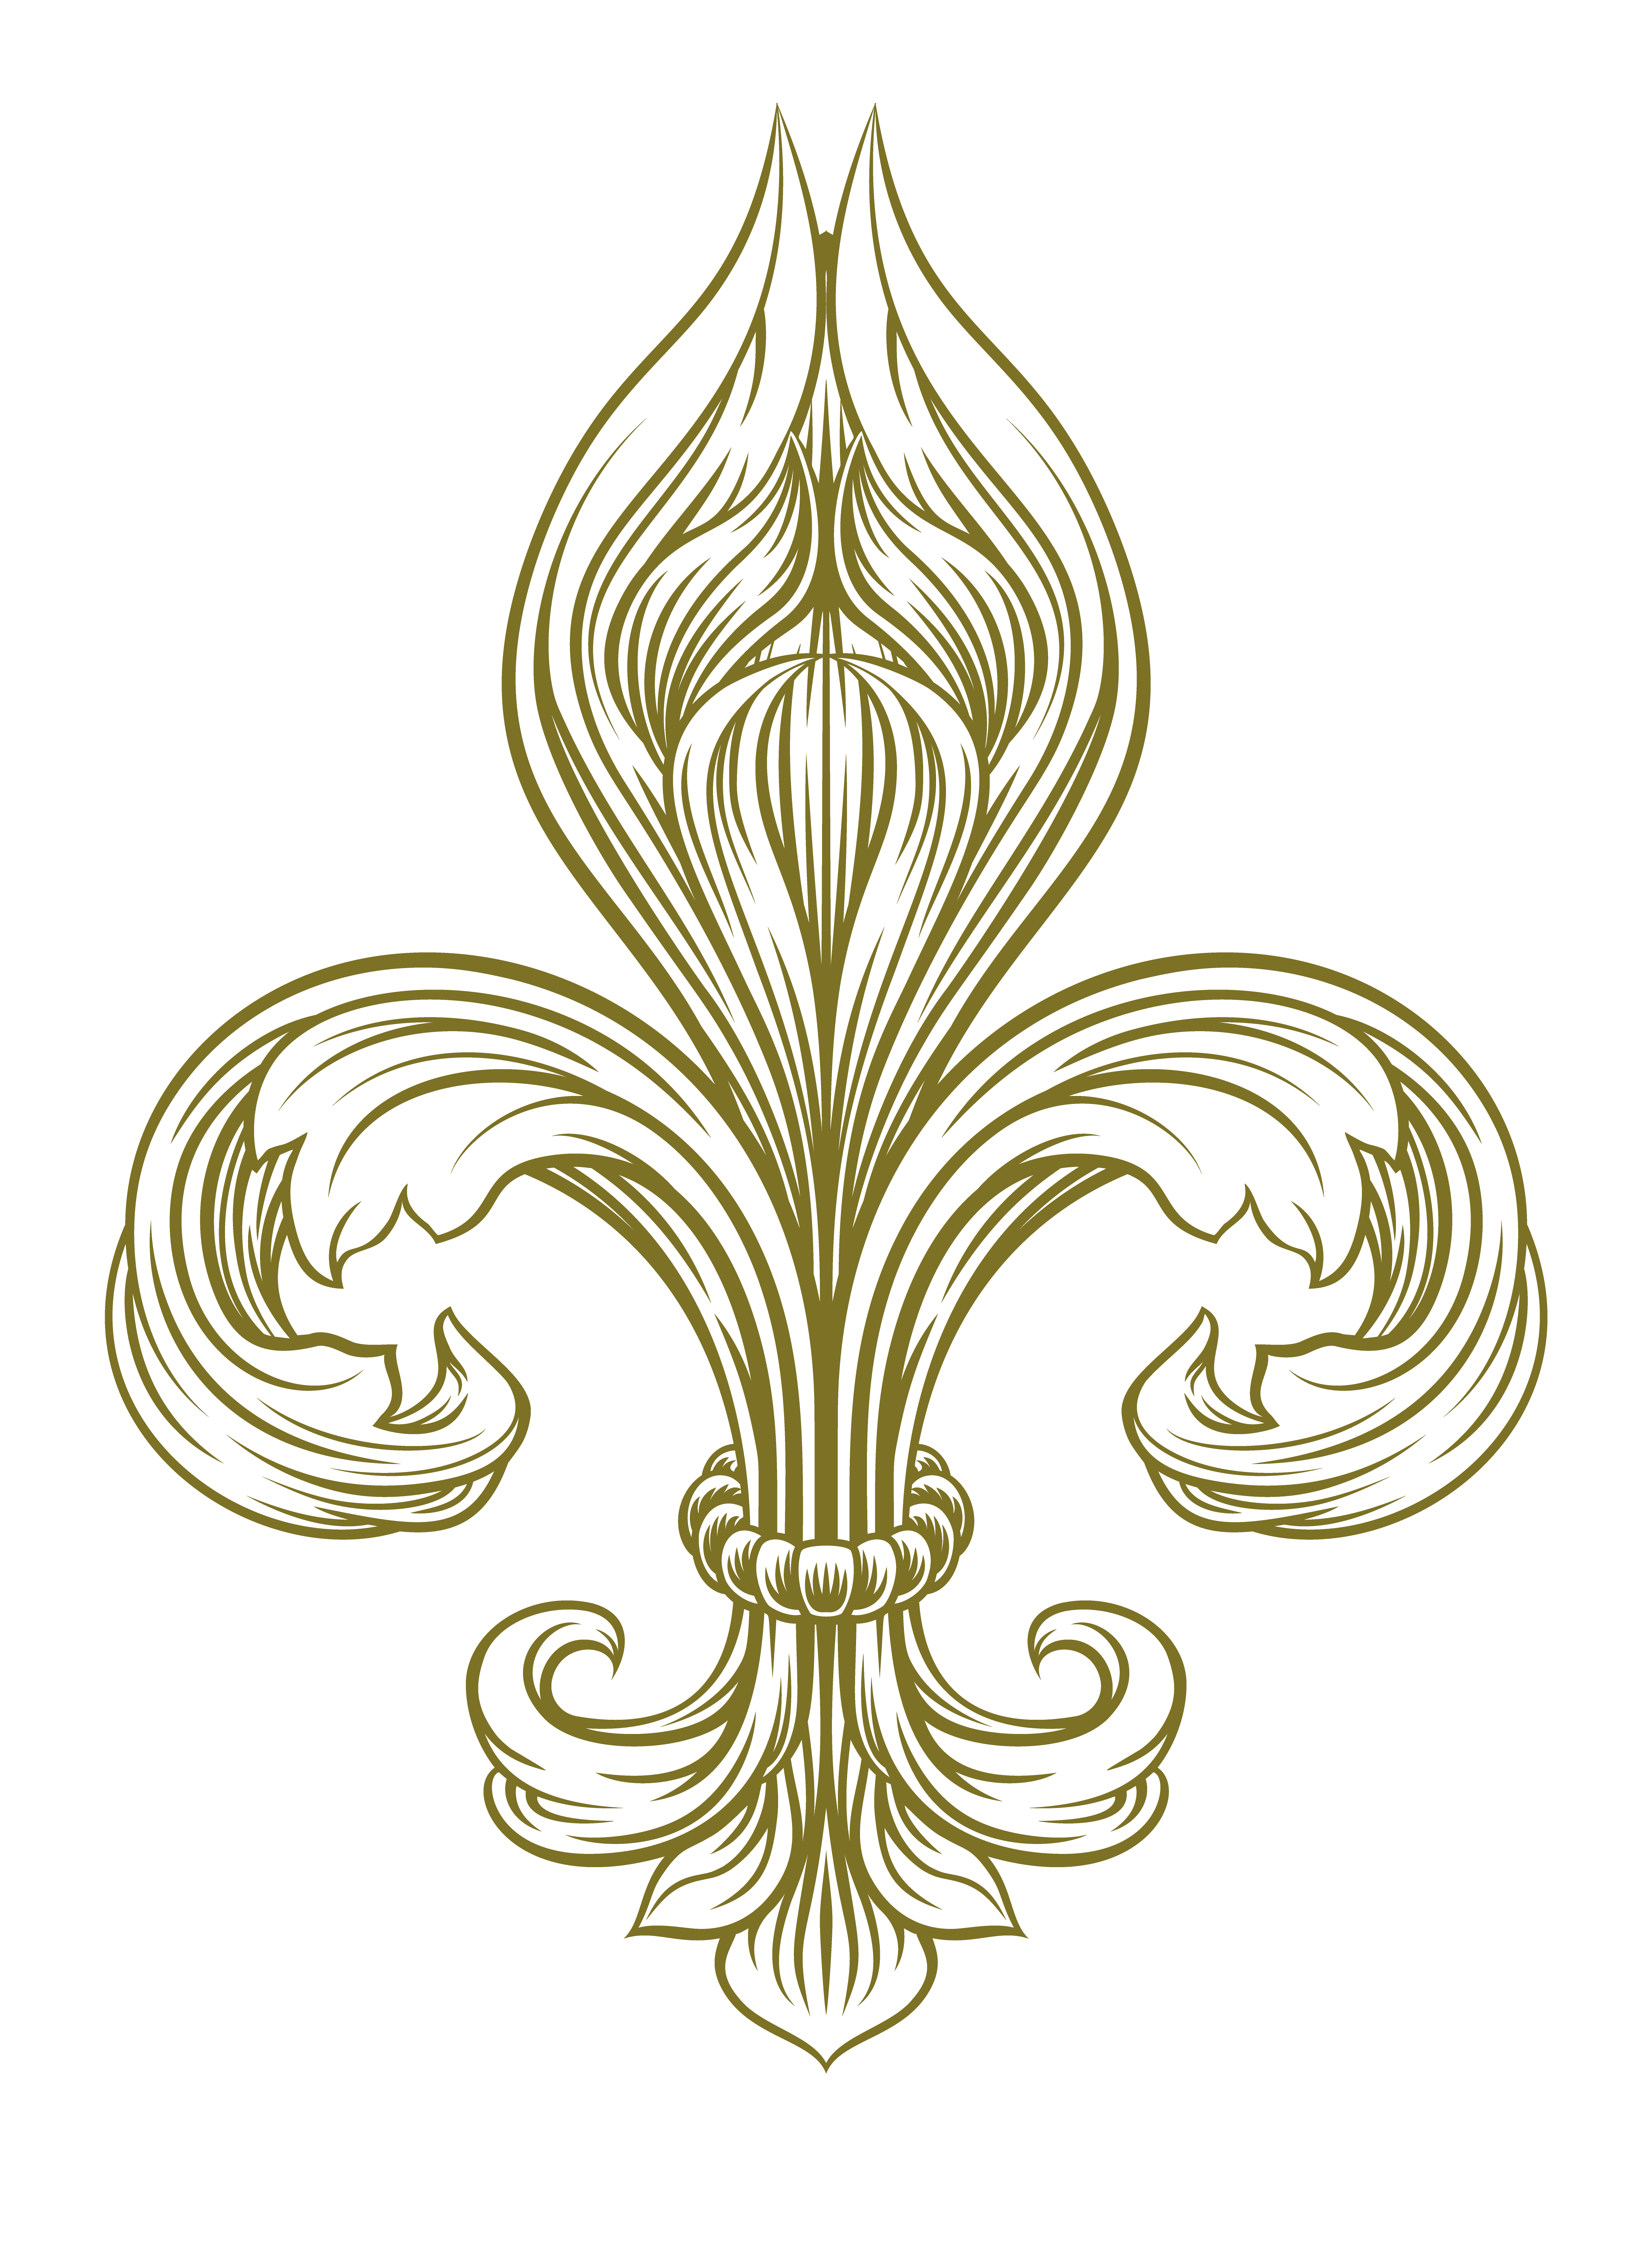 Fleur De Lis Symbol, Its Meaning, History and Origins